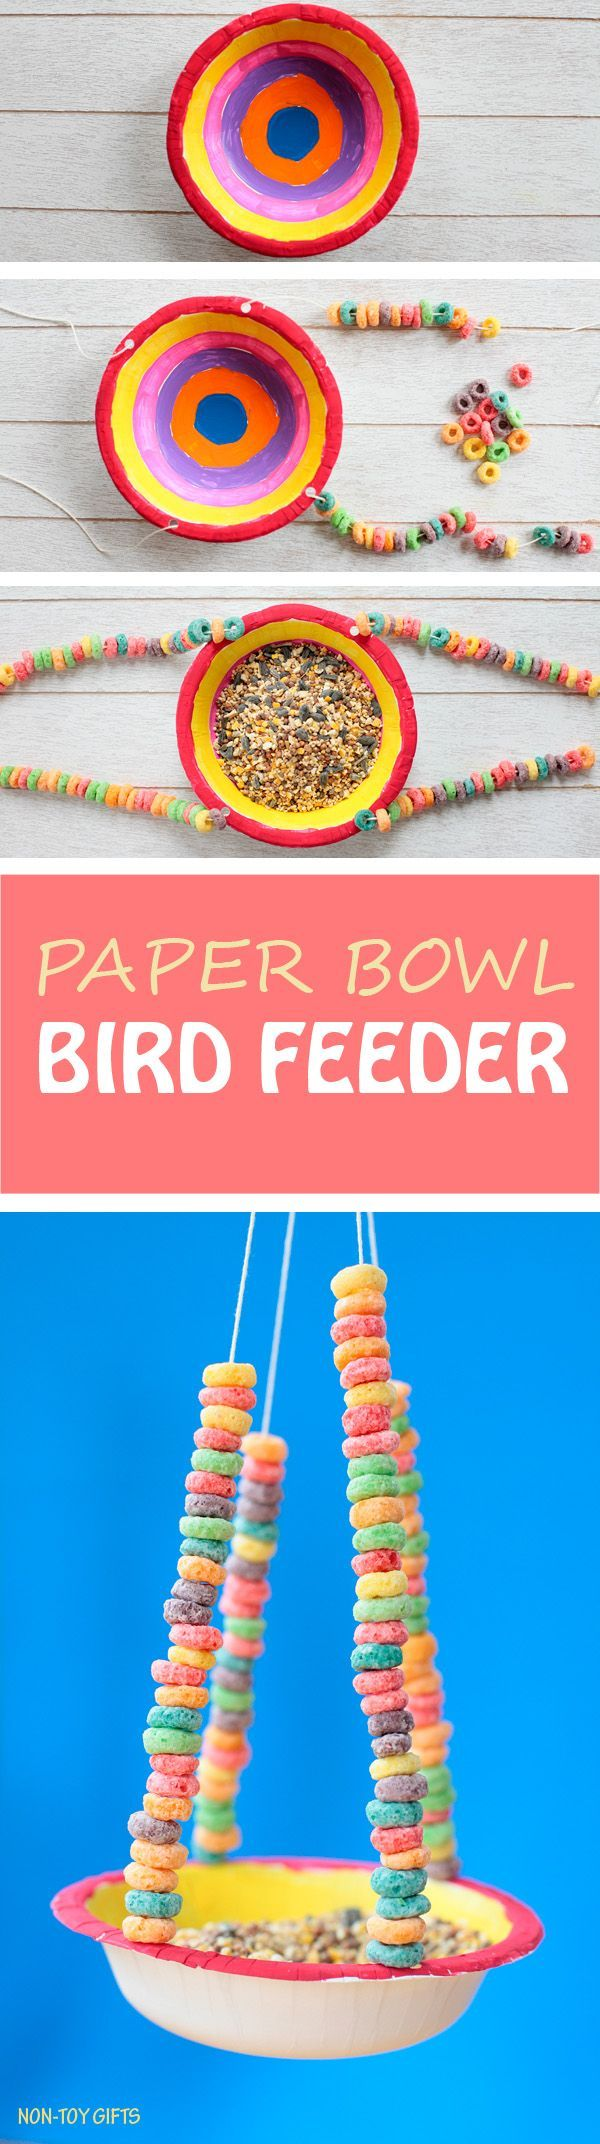 321 best bird houses and bird feeders images on pinterest diy